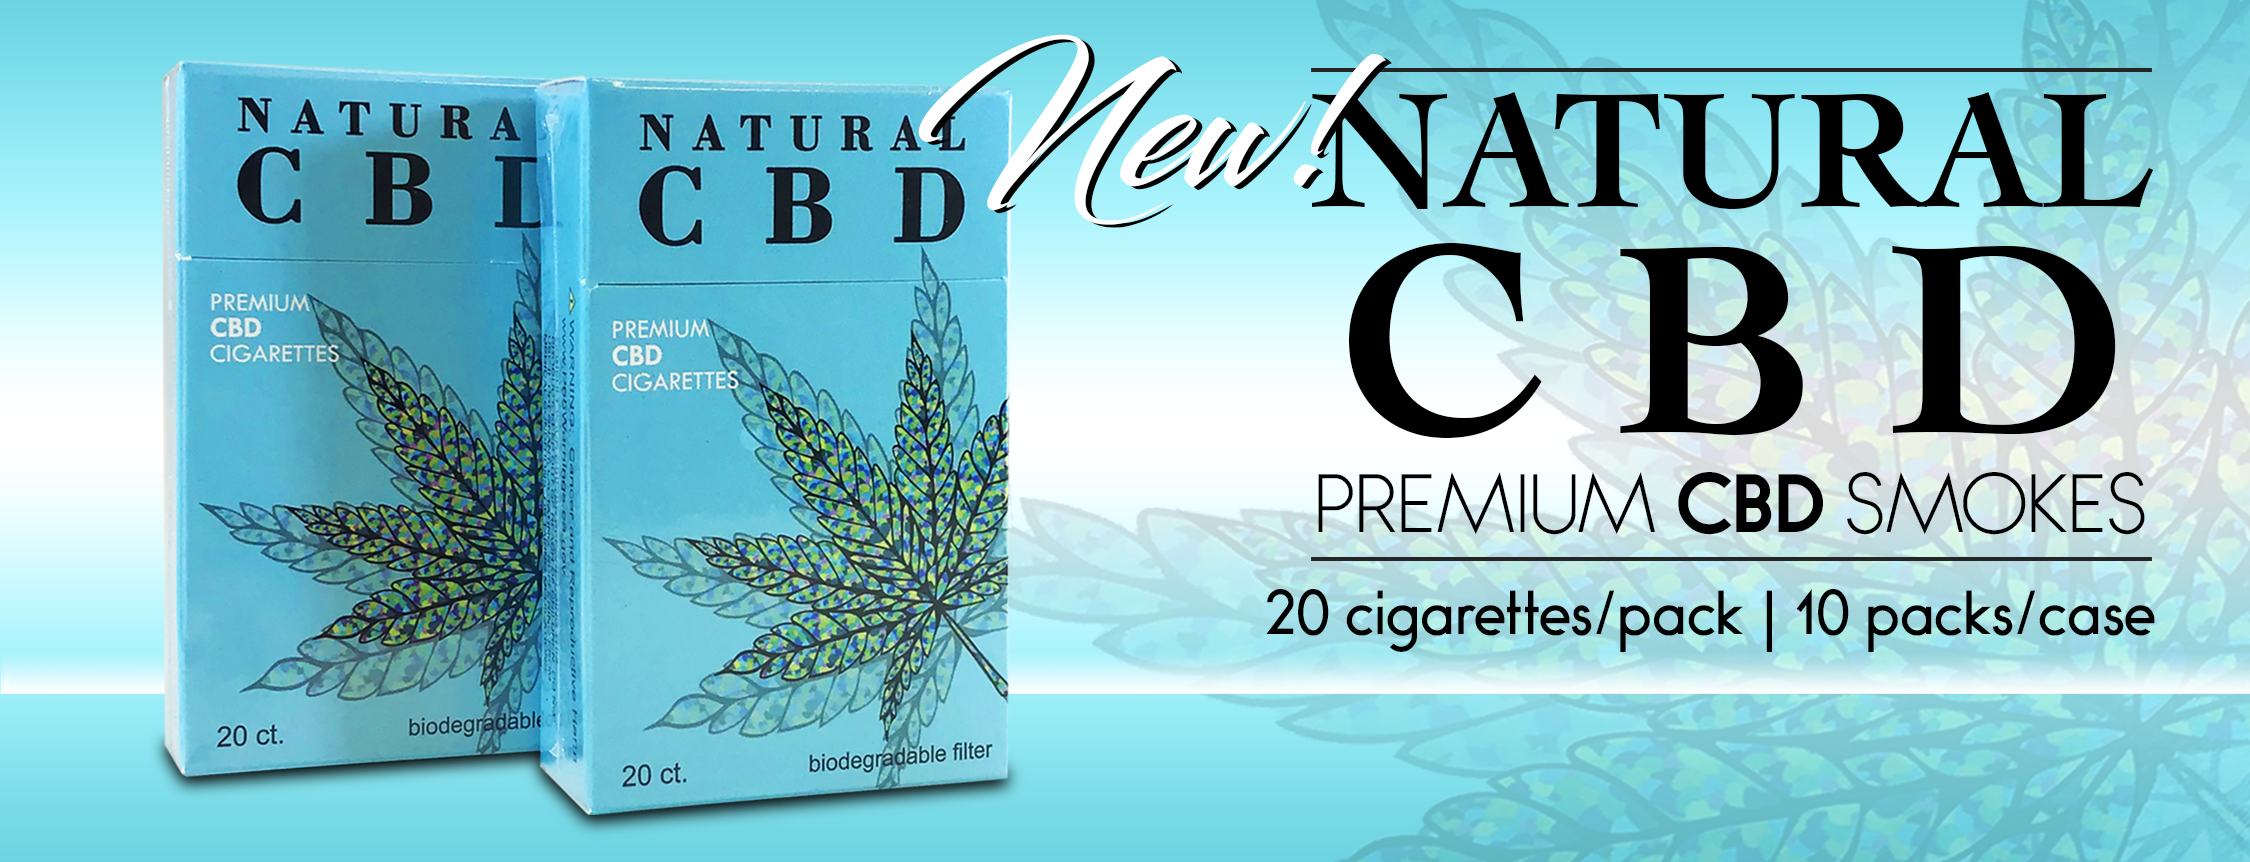 Natural CBD Cigarettes